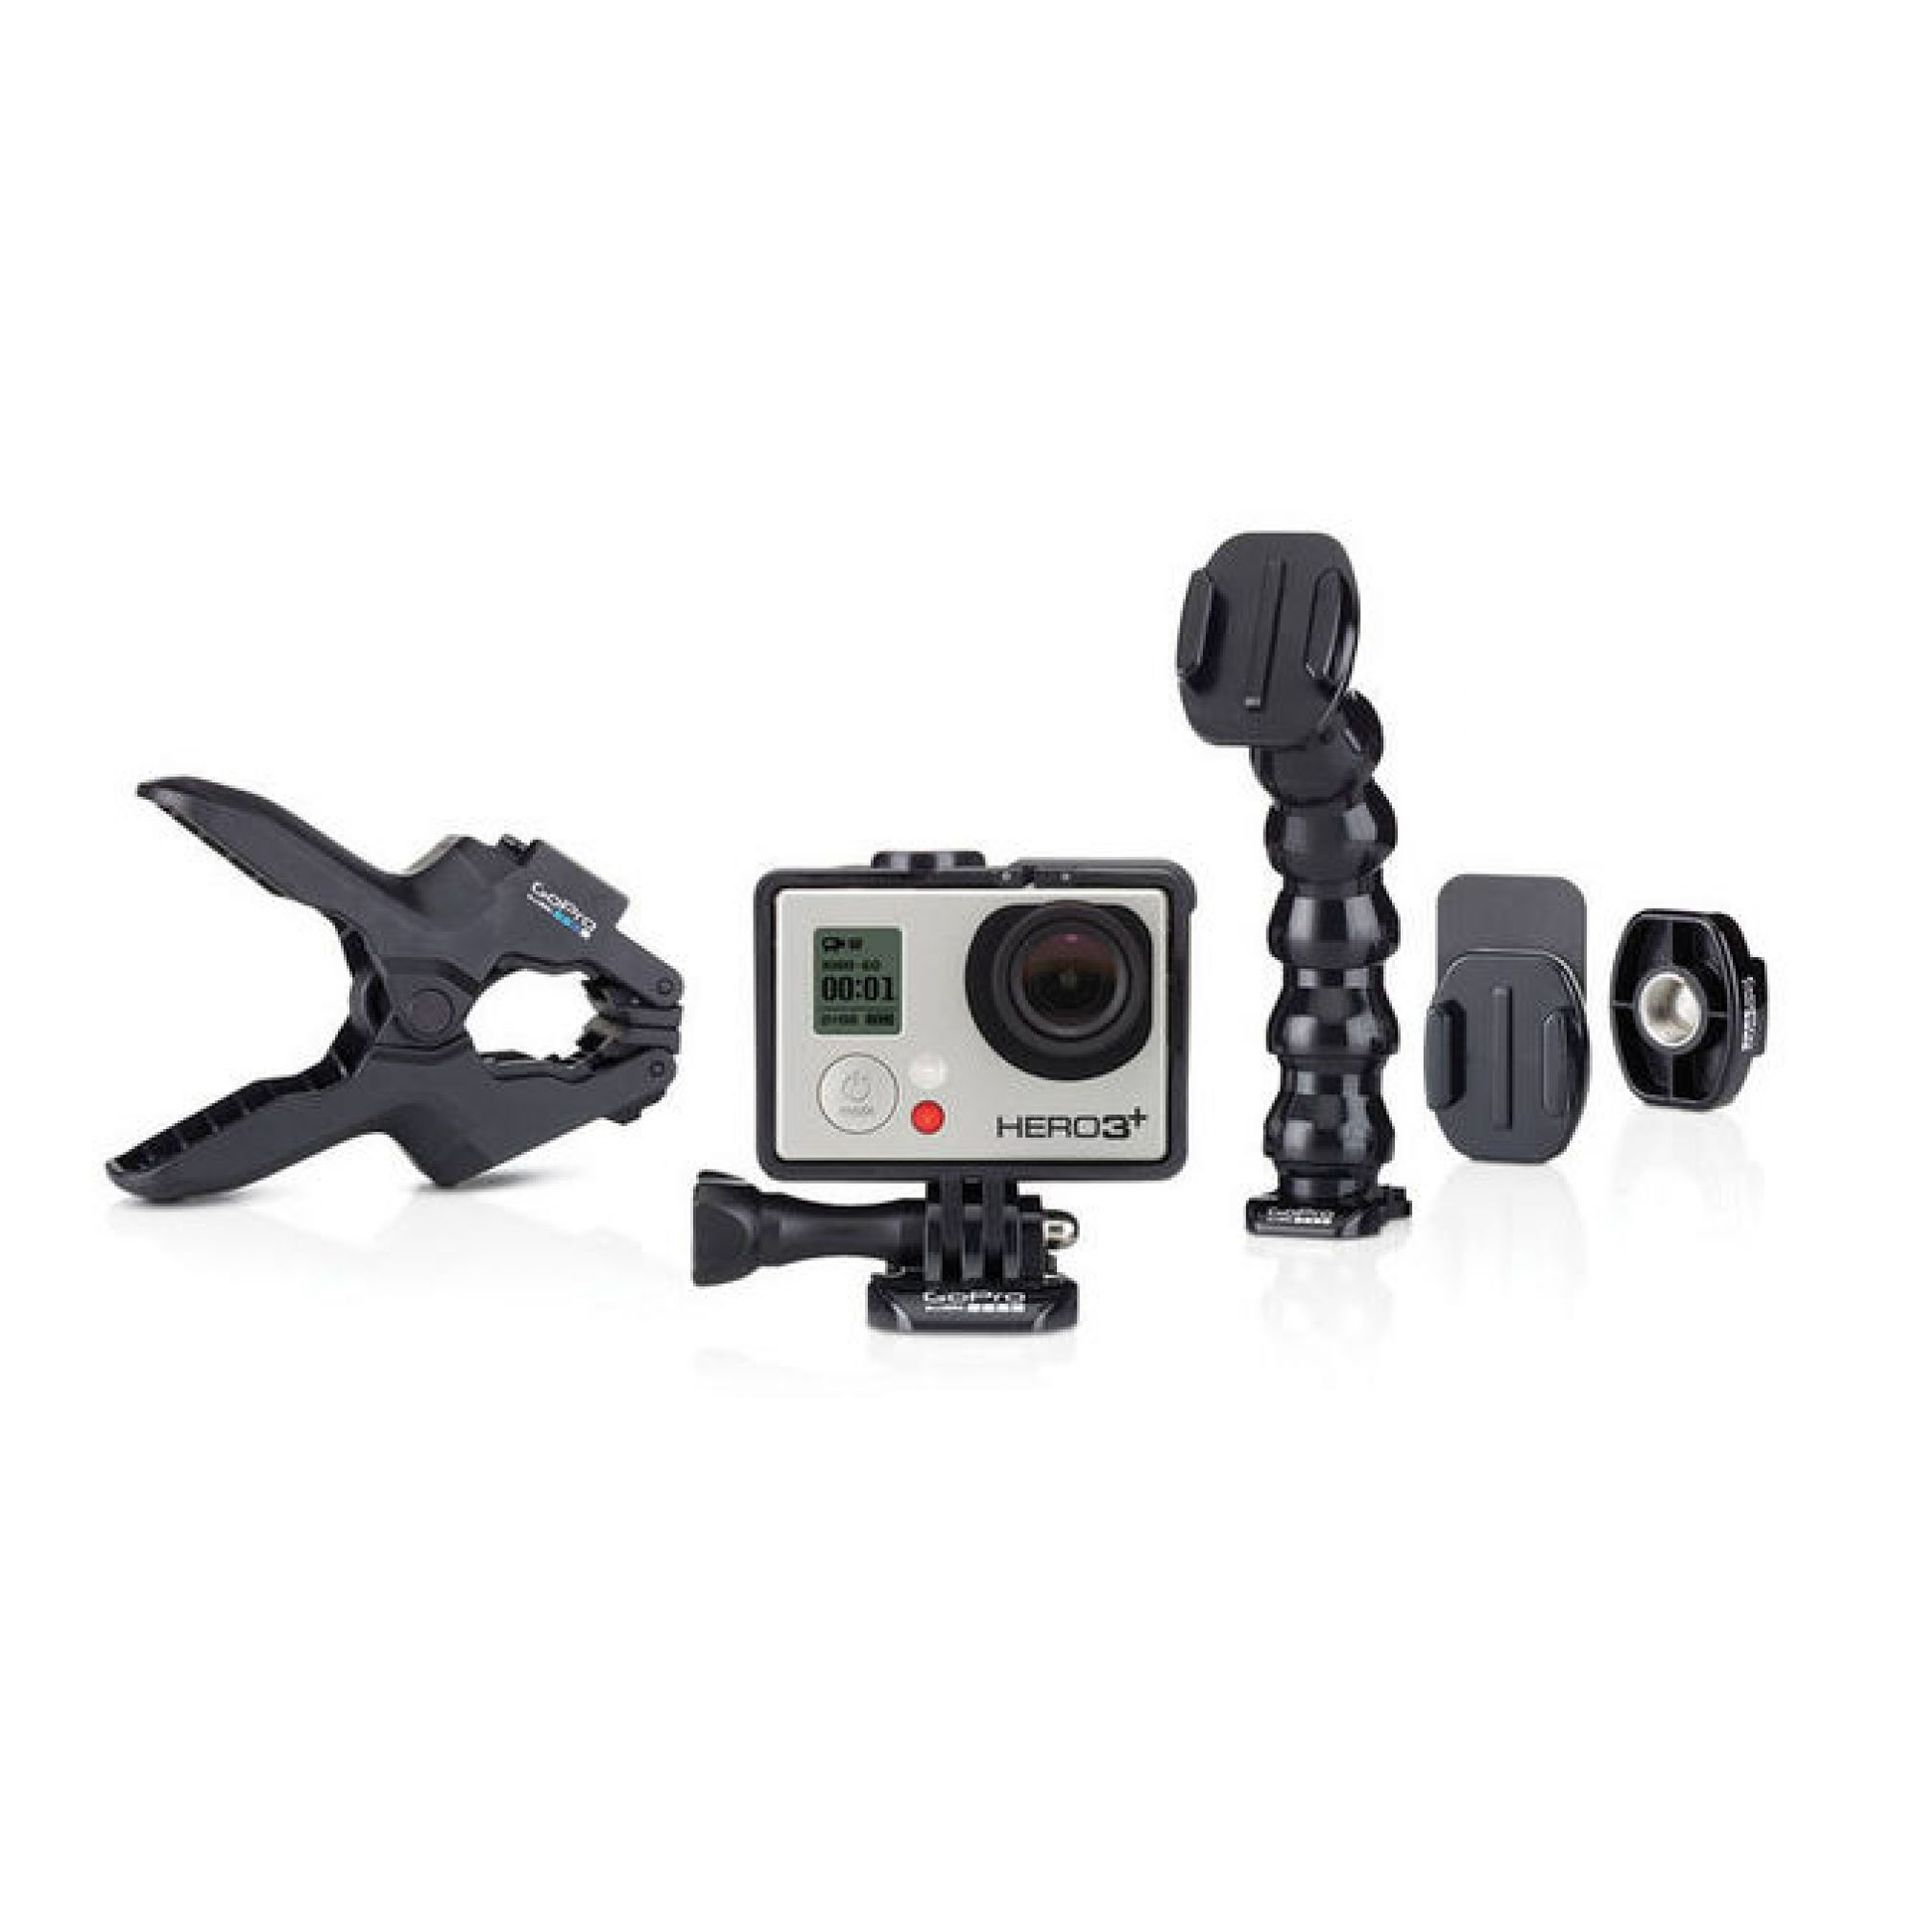 KAMERA GO PRO HERO 3+ BLACK EDITION MUSIC